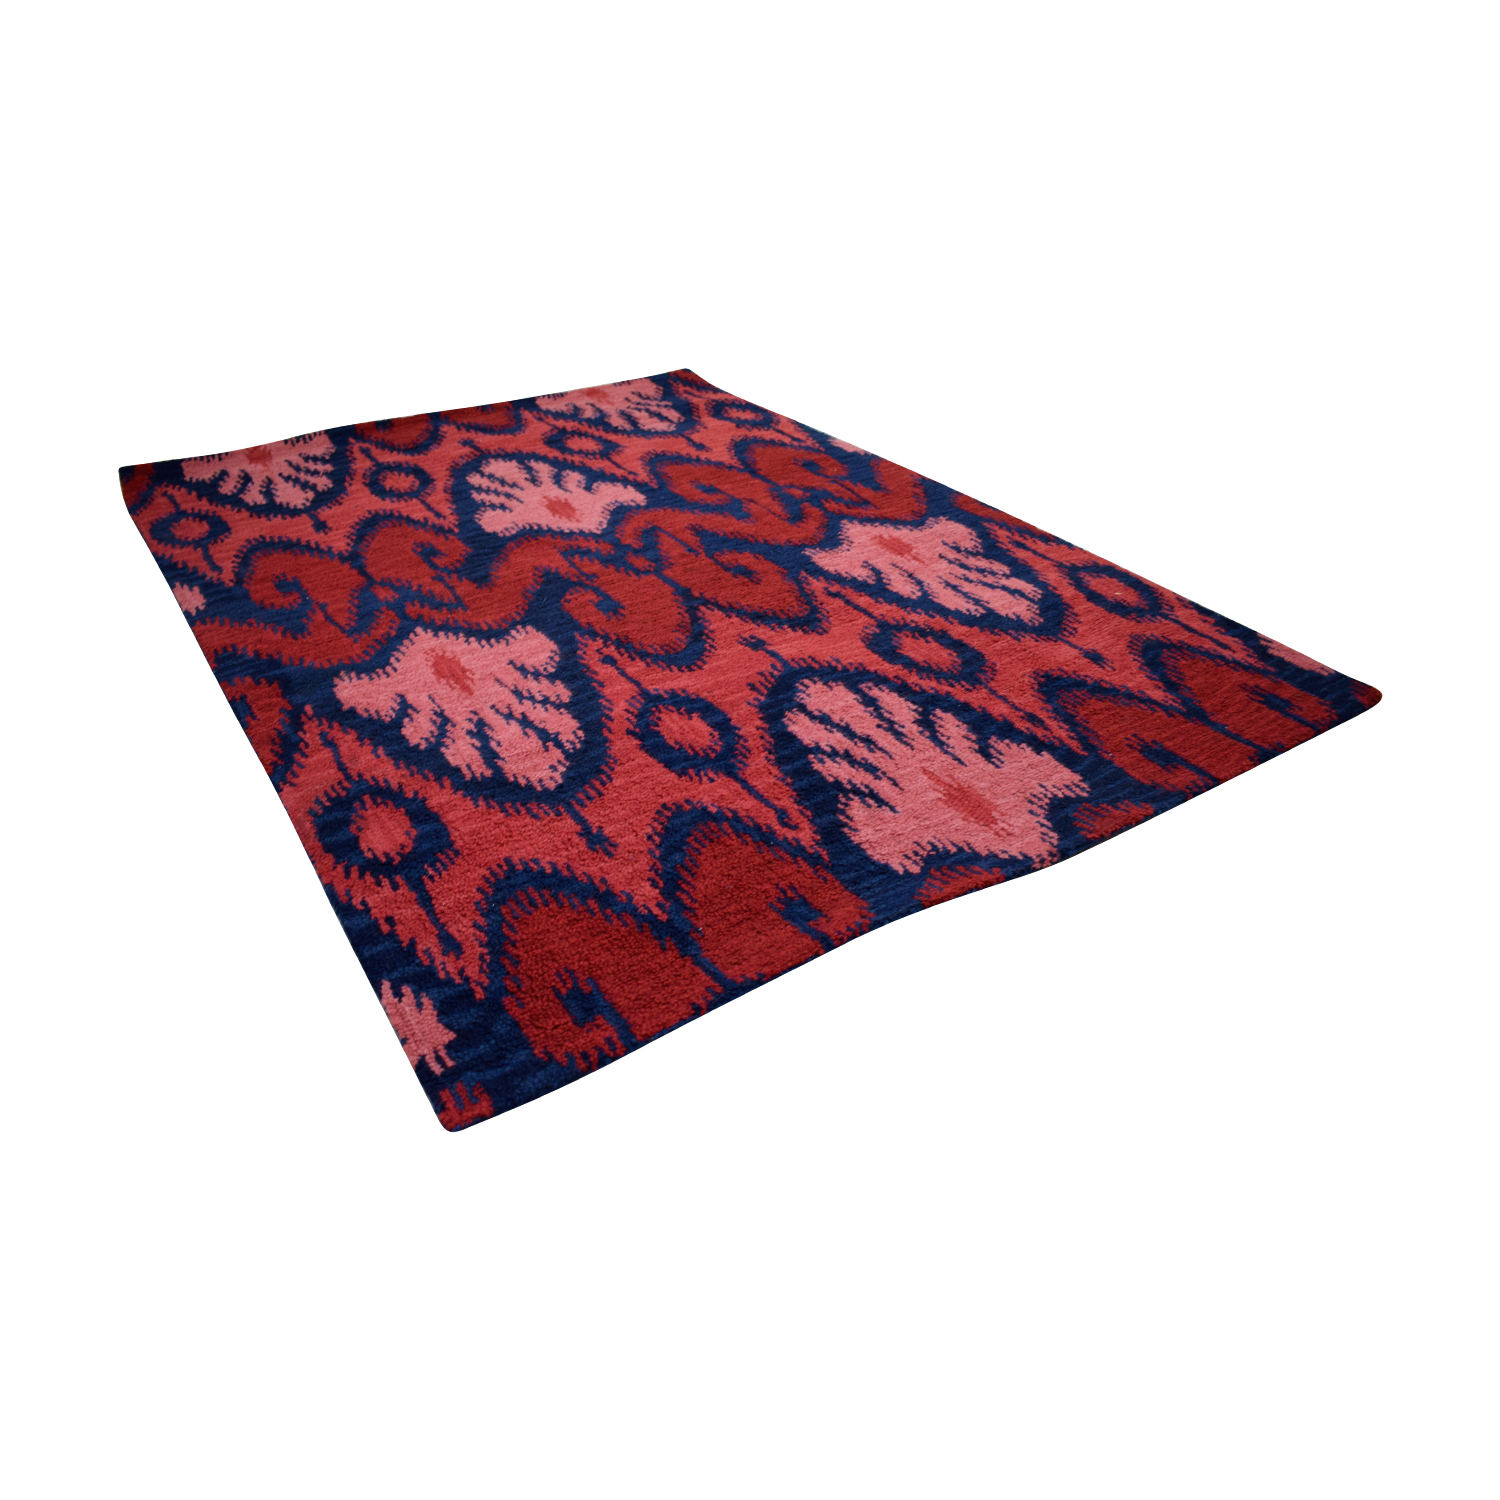 Ikat Wool Red and Navy Rug Decor